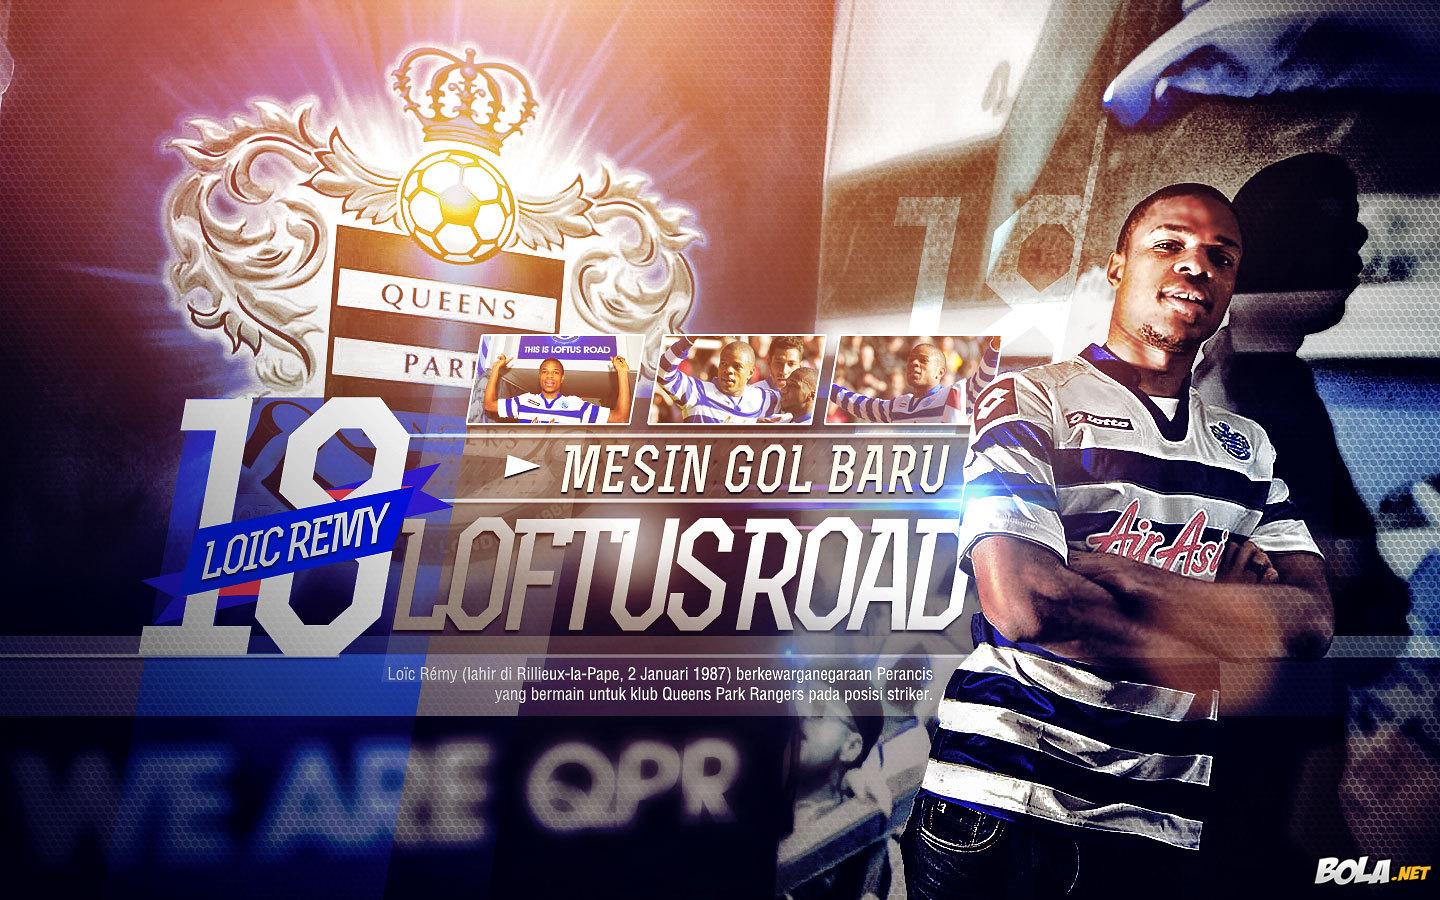 Download Wallpaper Terbaru Sepak Bola Edisi 18 Mei 2013